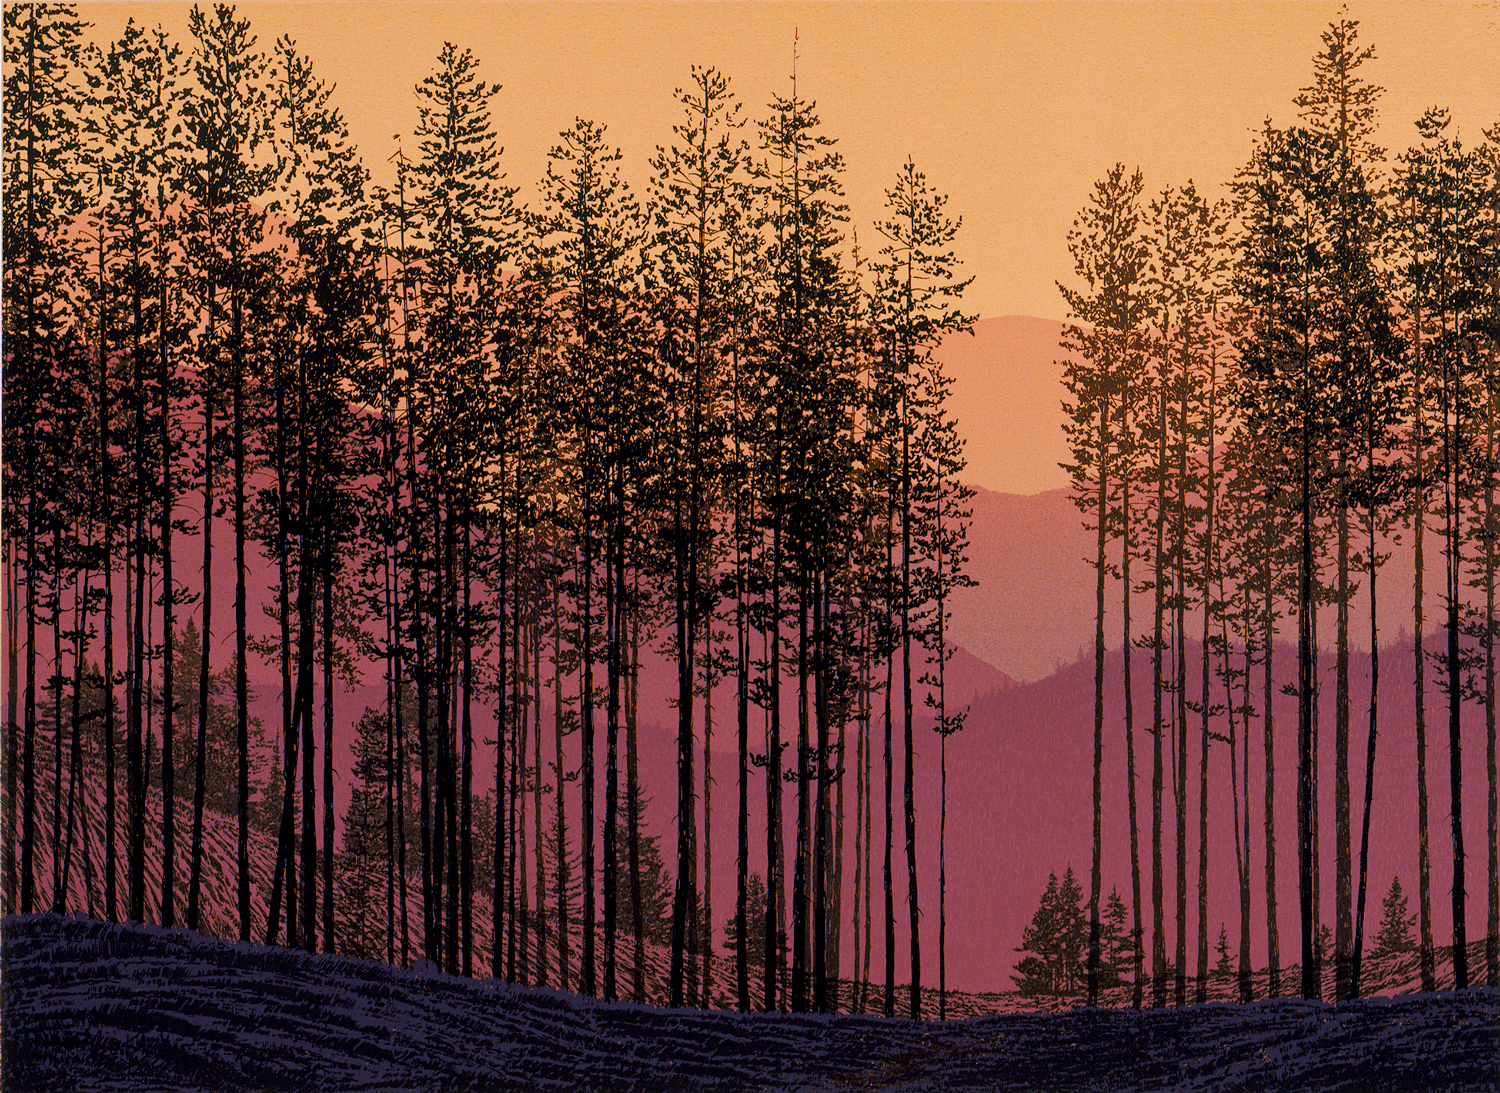 "184.3   Lodgepole Pines - state 2   17.5"" x 24"" – 445 x 610mm 12 colors 8 edition / 3 available $450"